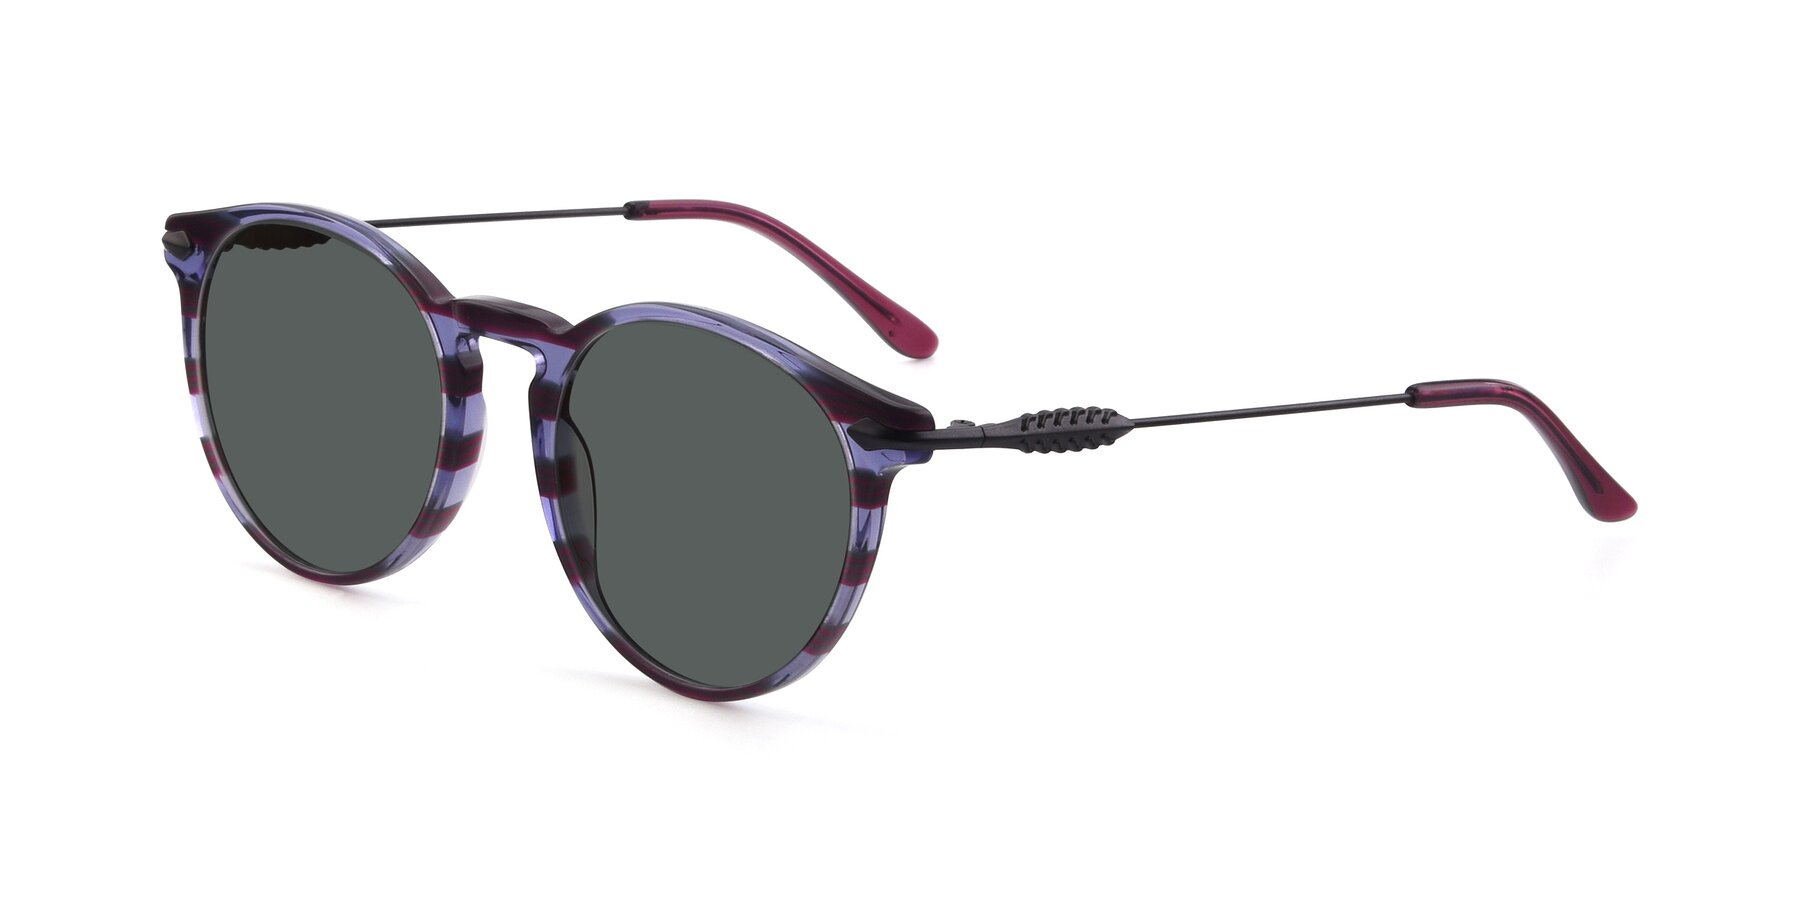 Angle of 17660 in Stripe Purple with Gray Polarized Lenses